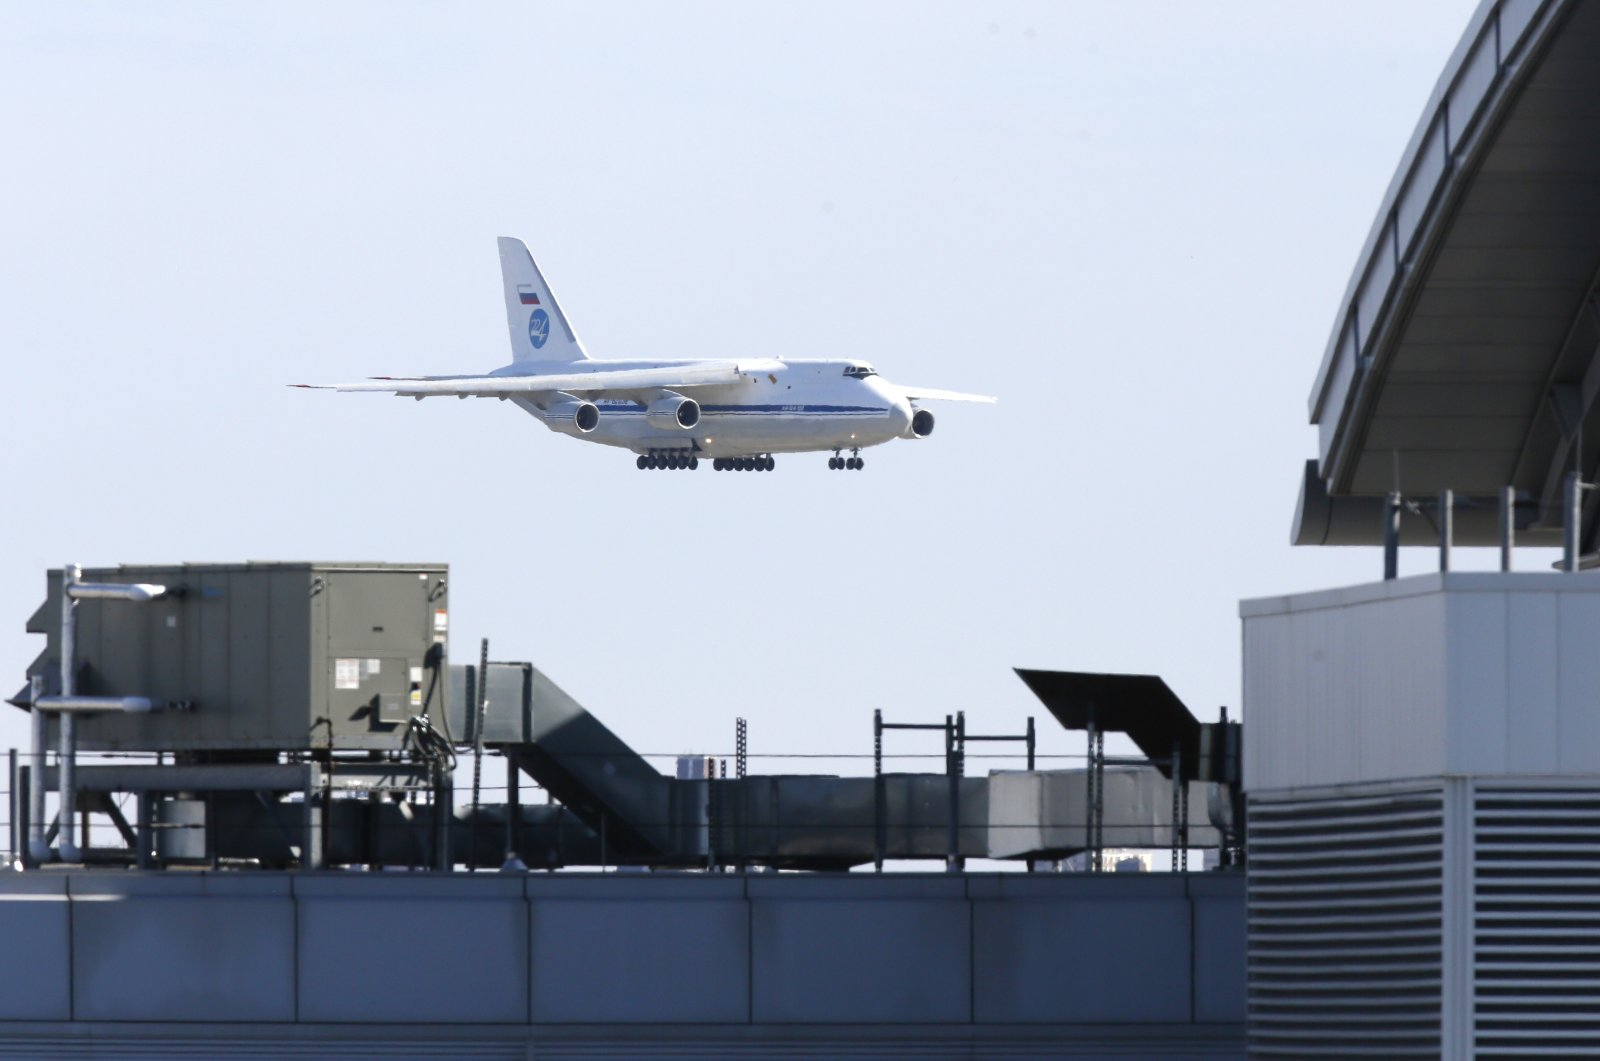 A Russian military transport plane carrying medical equipment, masks and supplies lands at John F. Kennedy International Airport during the outbreak of the novel coronavirus in New York City, New York, U.S., Wednesday, April 1, 2020. (Reuters Photo)